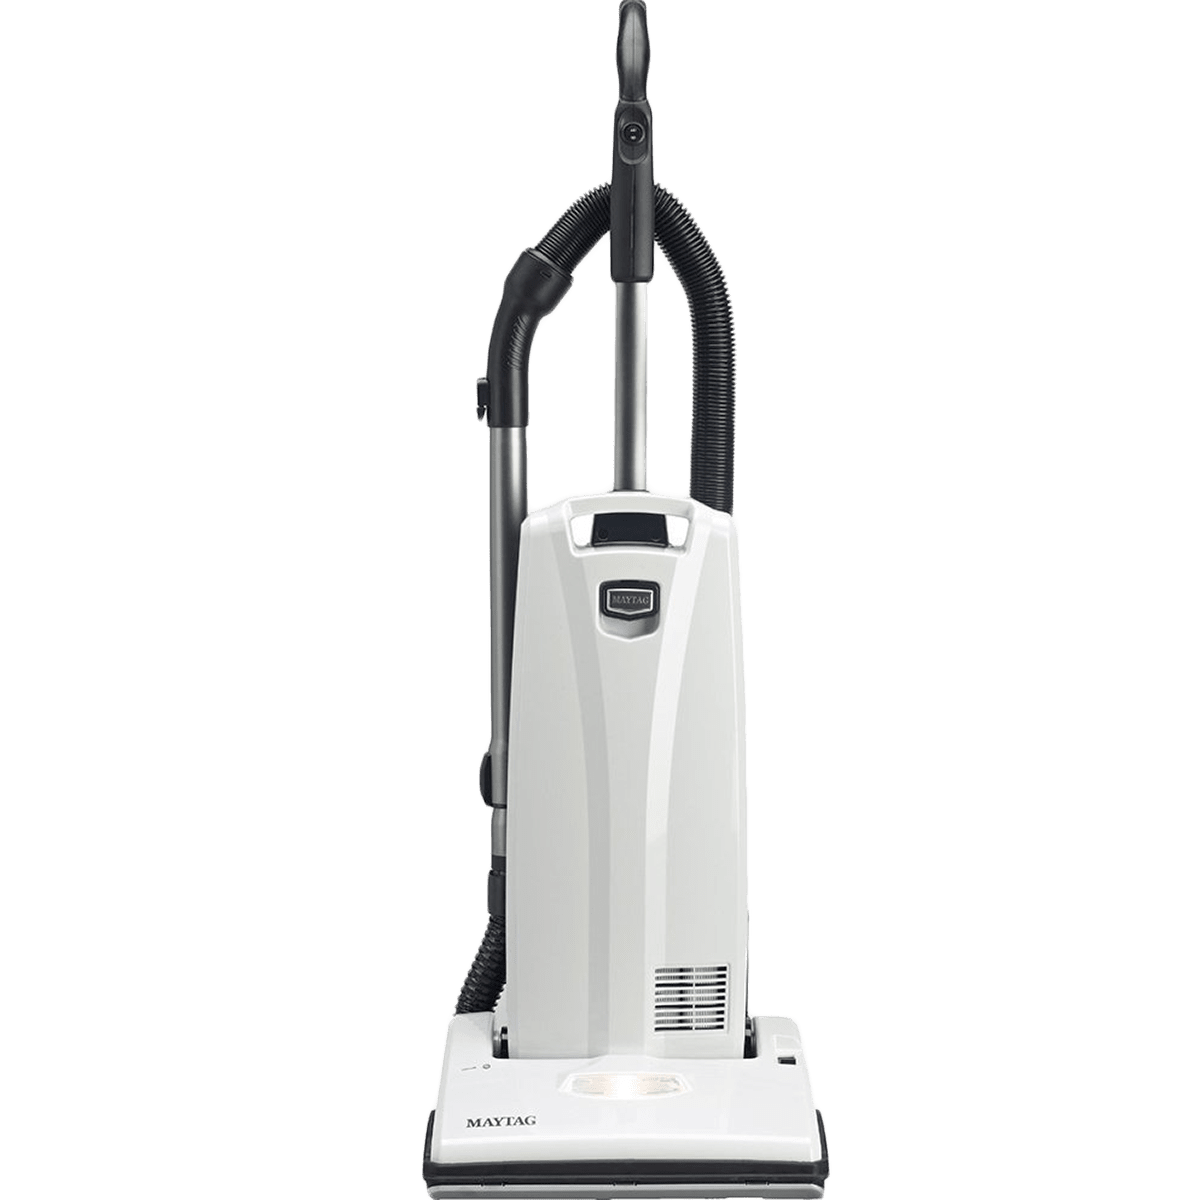 Maytag M700 Upright Vacuum Cleaner